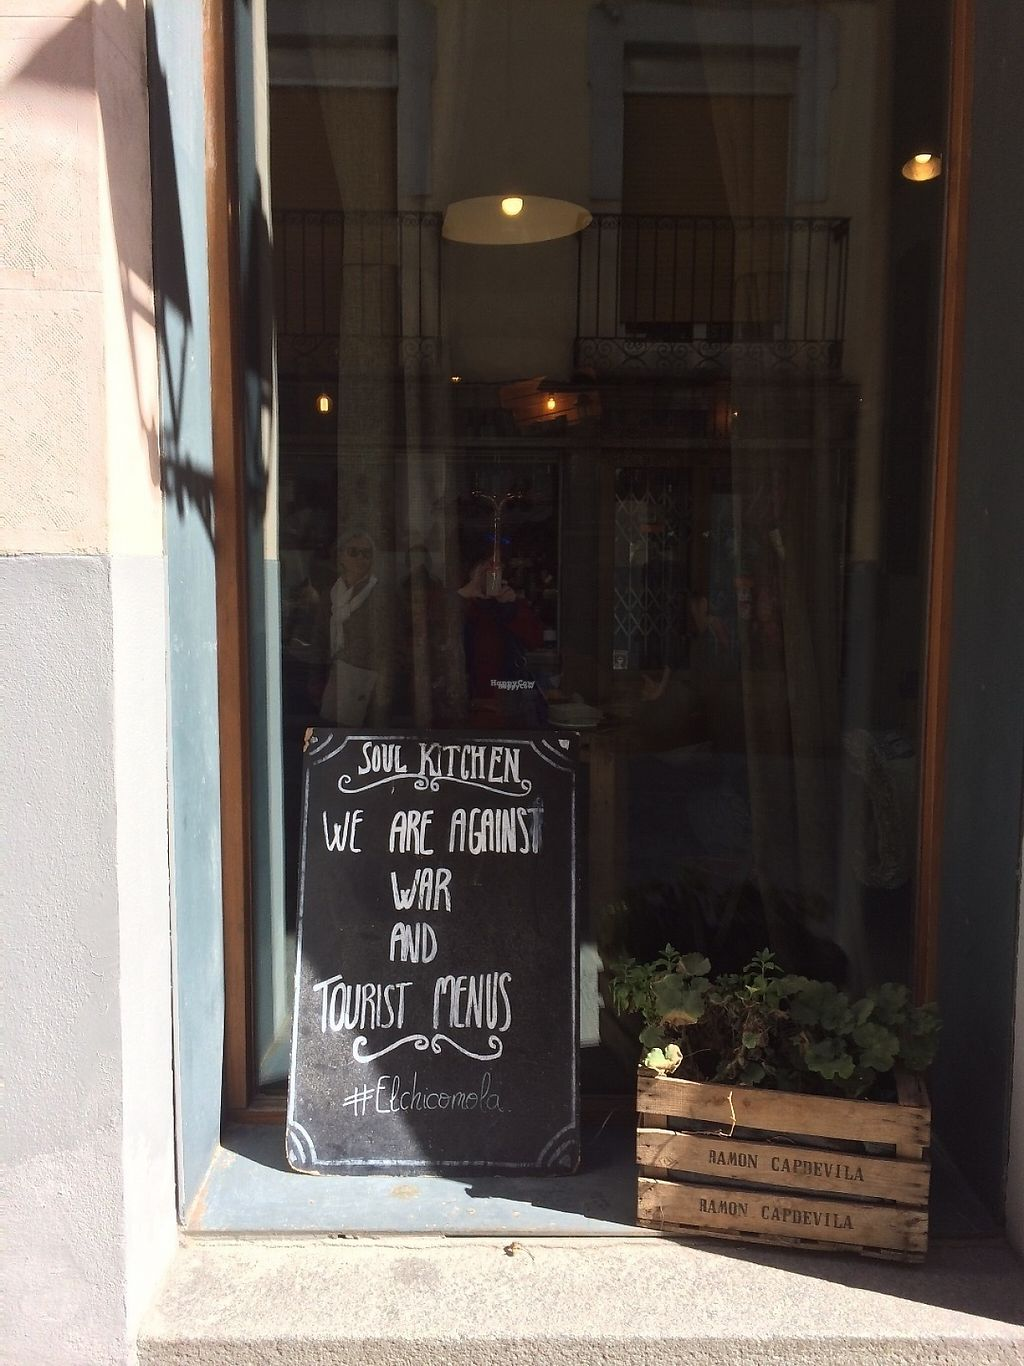 """Photo of Soul Kitchen  by <a href=""""/members/profile/Veggie%20Mama"""">Veggie Mama</a> <br/>Sign in Soul Kitchen window: We are against war and tourist menus! <br/> April 7, 2017  - <a href='/contact/abuse/image/83865/245541'>Report</a>"""